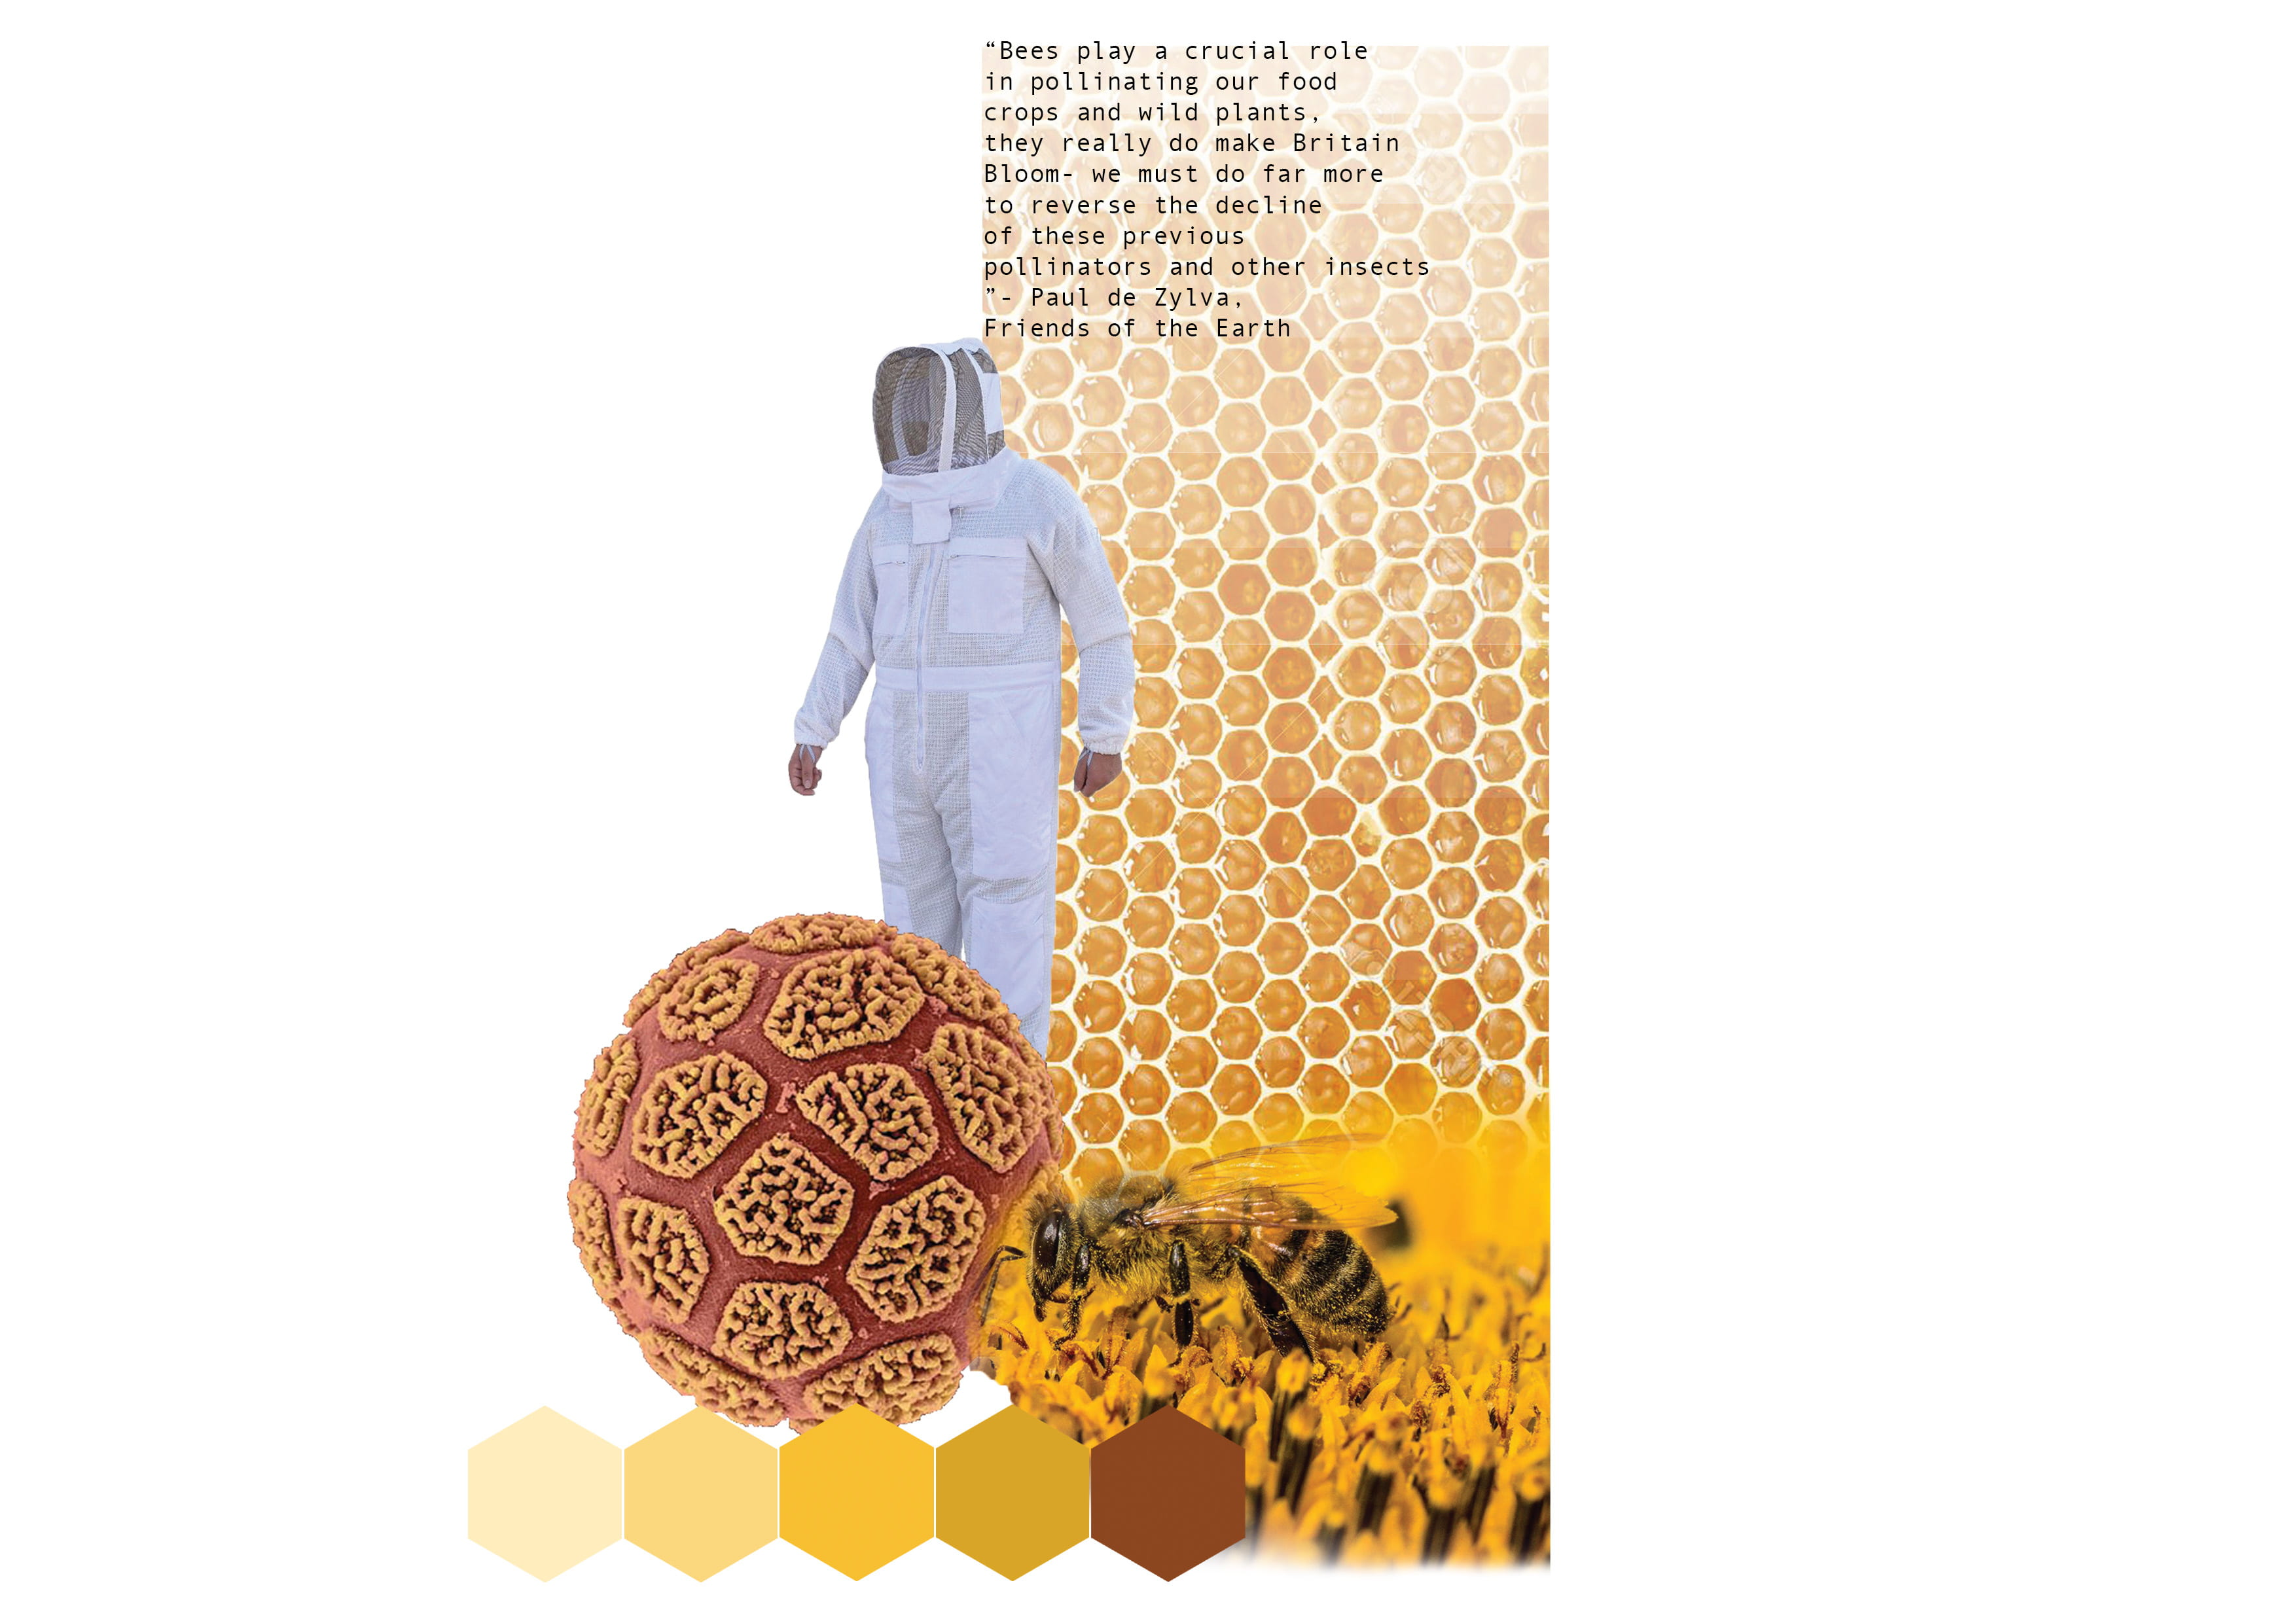 A mood board showing a person in a bee-keeping suit and different shades of yellow.